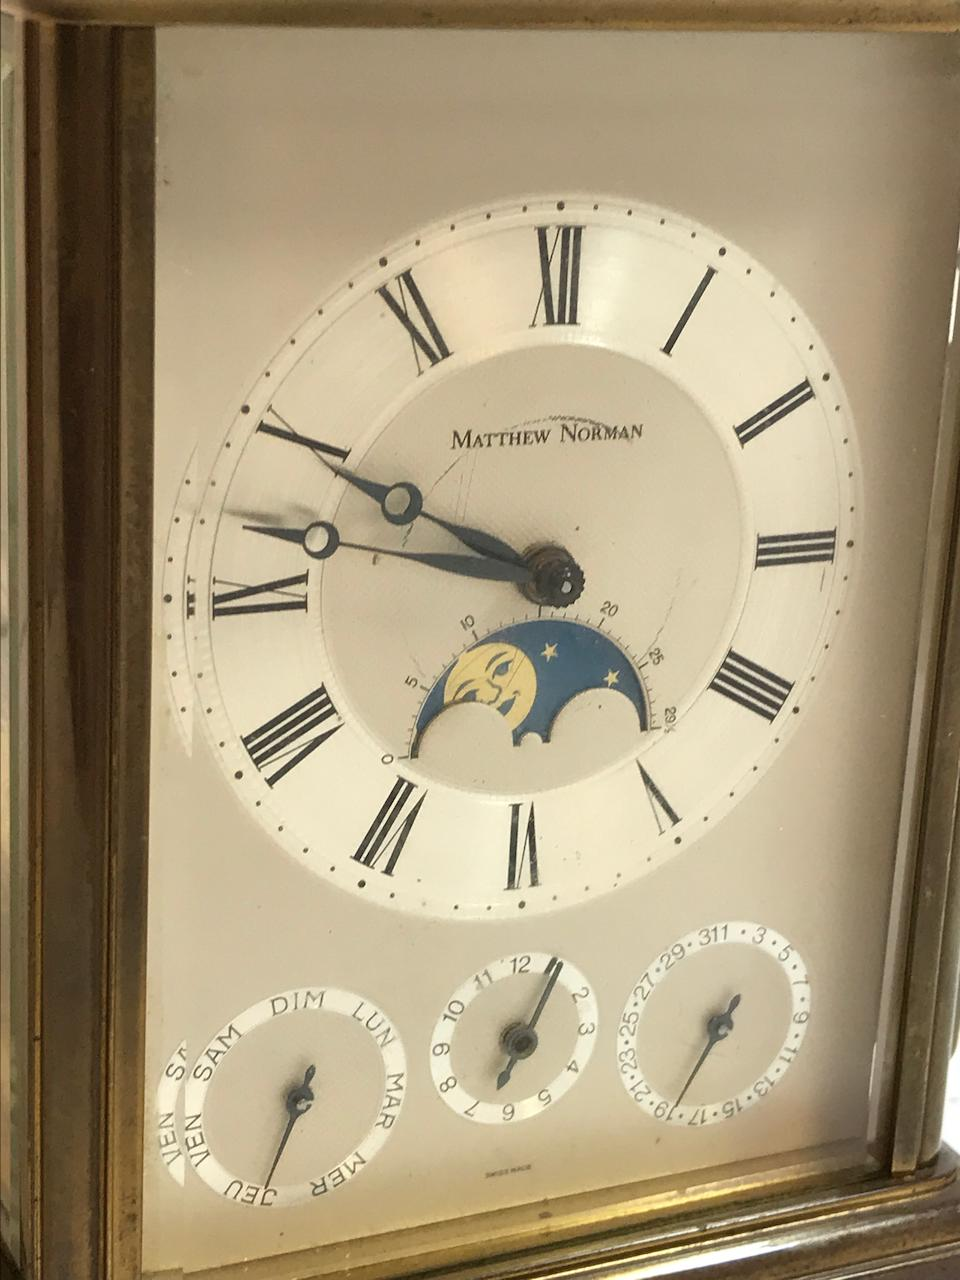 A Swiss brass hour repeating carriage clock with calendar, moon phase and alarmSigned Mathew Norman Recent